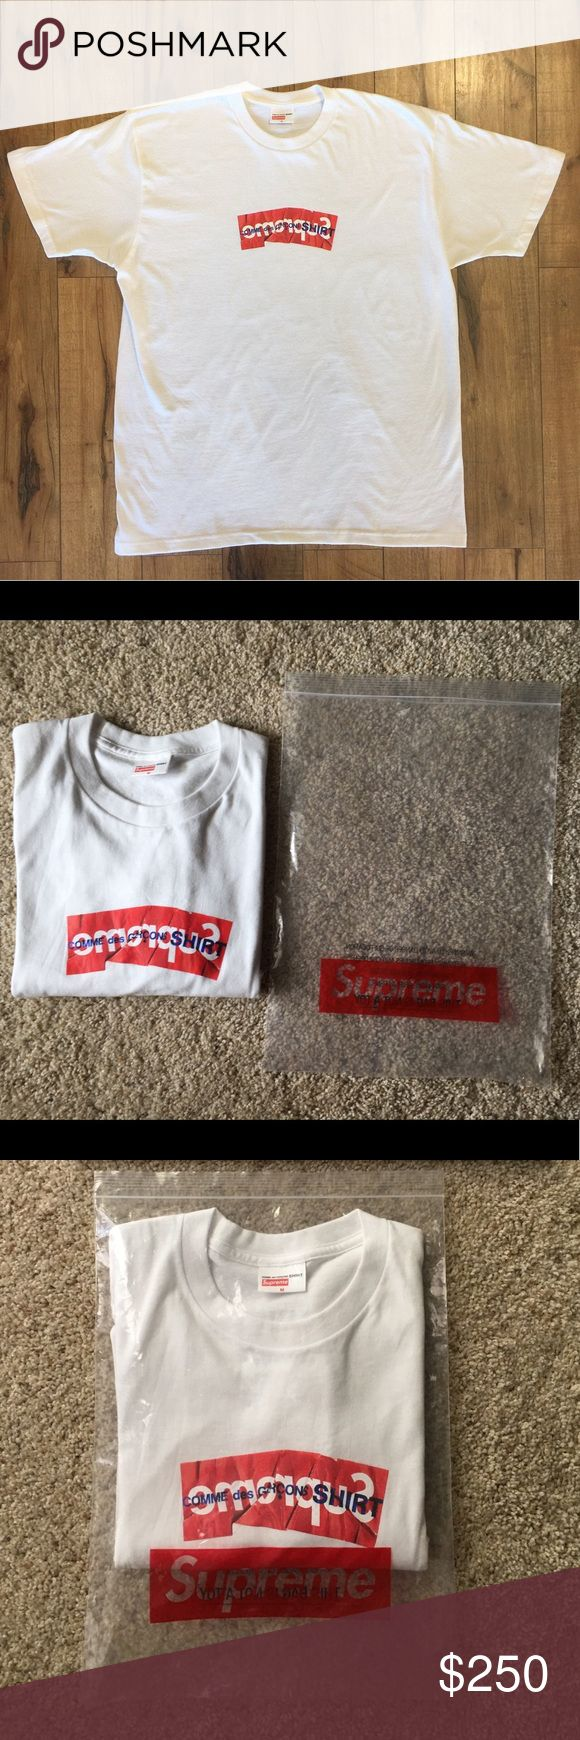 """Supreme """"Comme Des Garçons"""" Limited Edition Shirt Only worn once, still in excellent condition! Comes with original bag, I bought this (at By George in Austin, Tx) for $200, but I'm pricing it at $250 since its limited edition. Size medium, 100% authentic. Comme des Garcons Shirts Tees - Short Sleeve"""